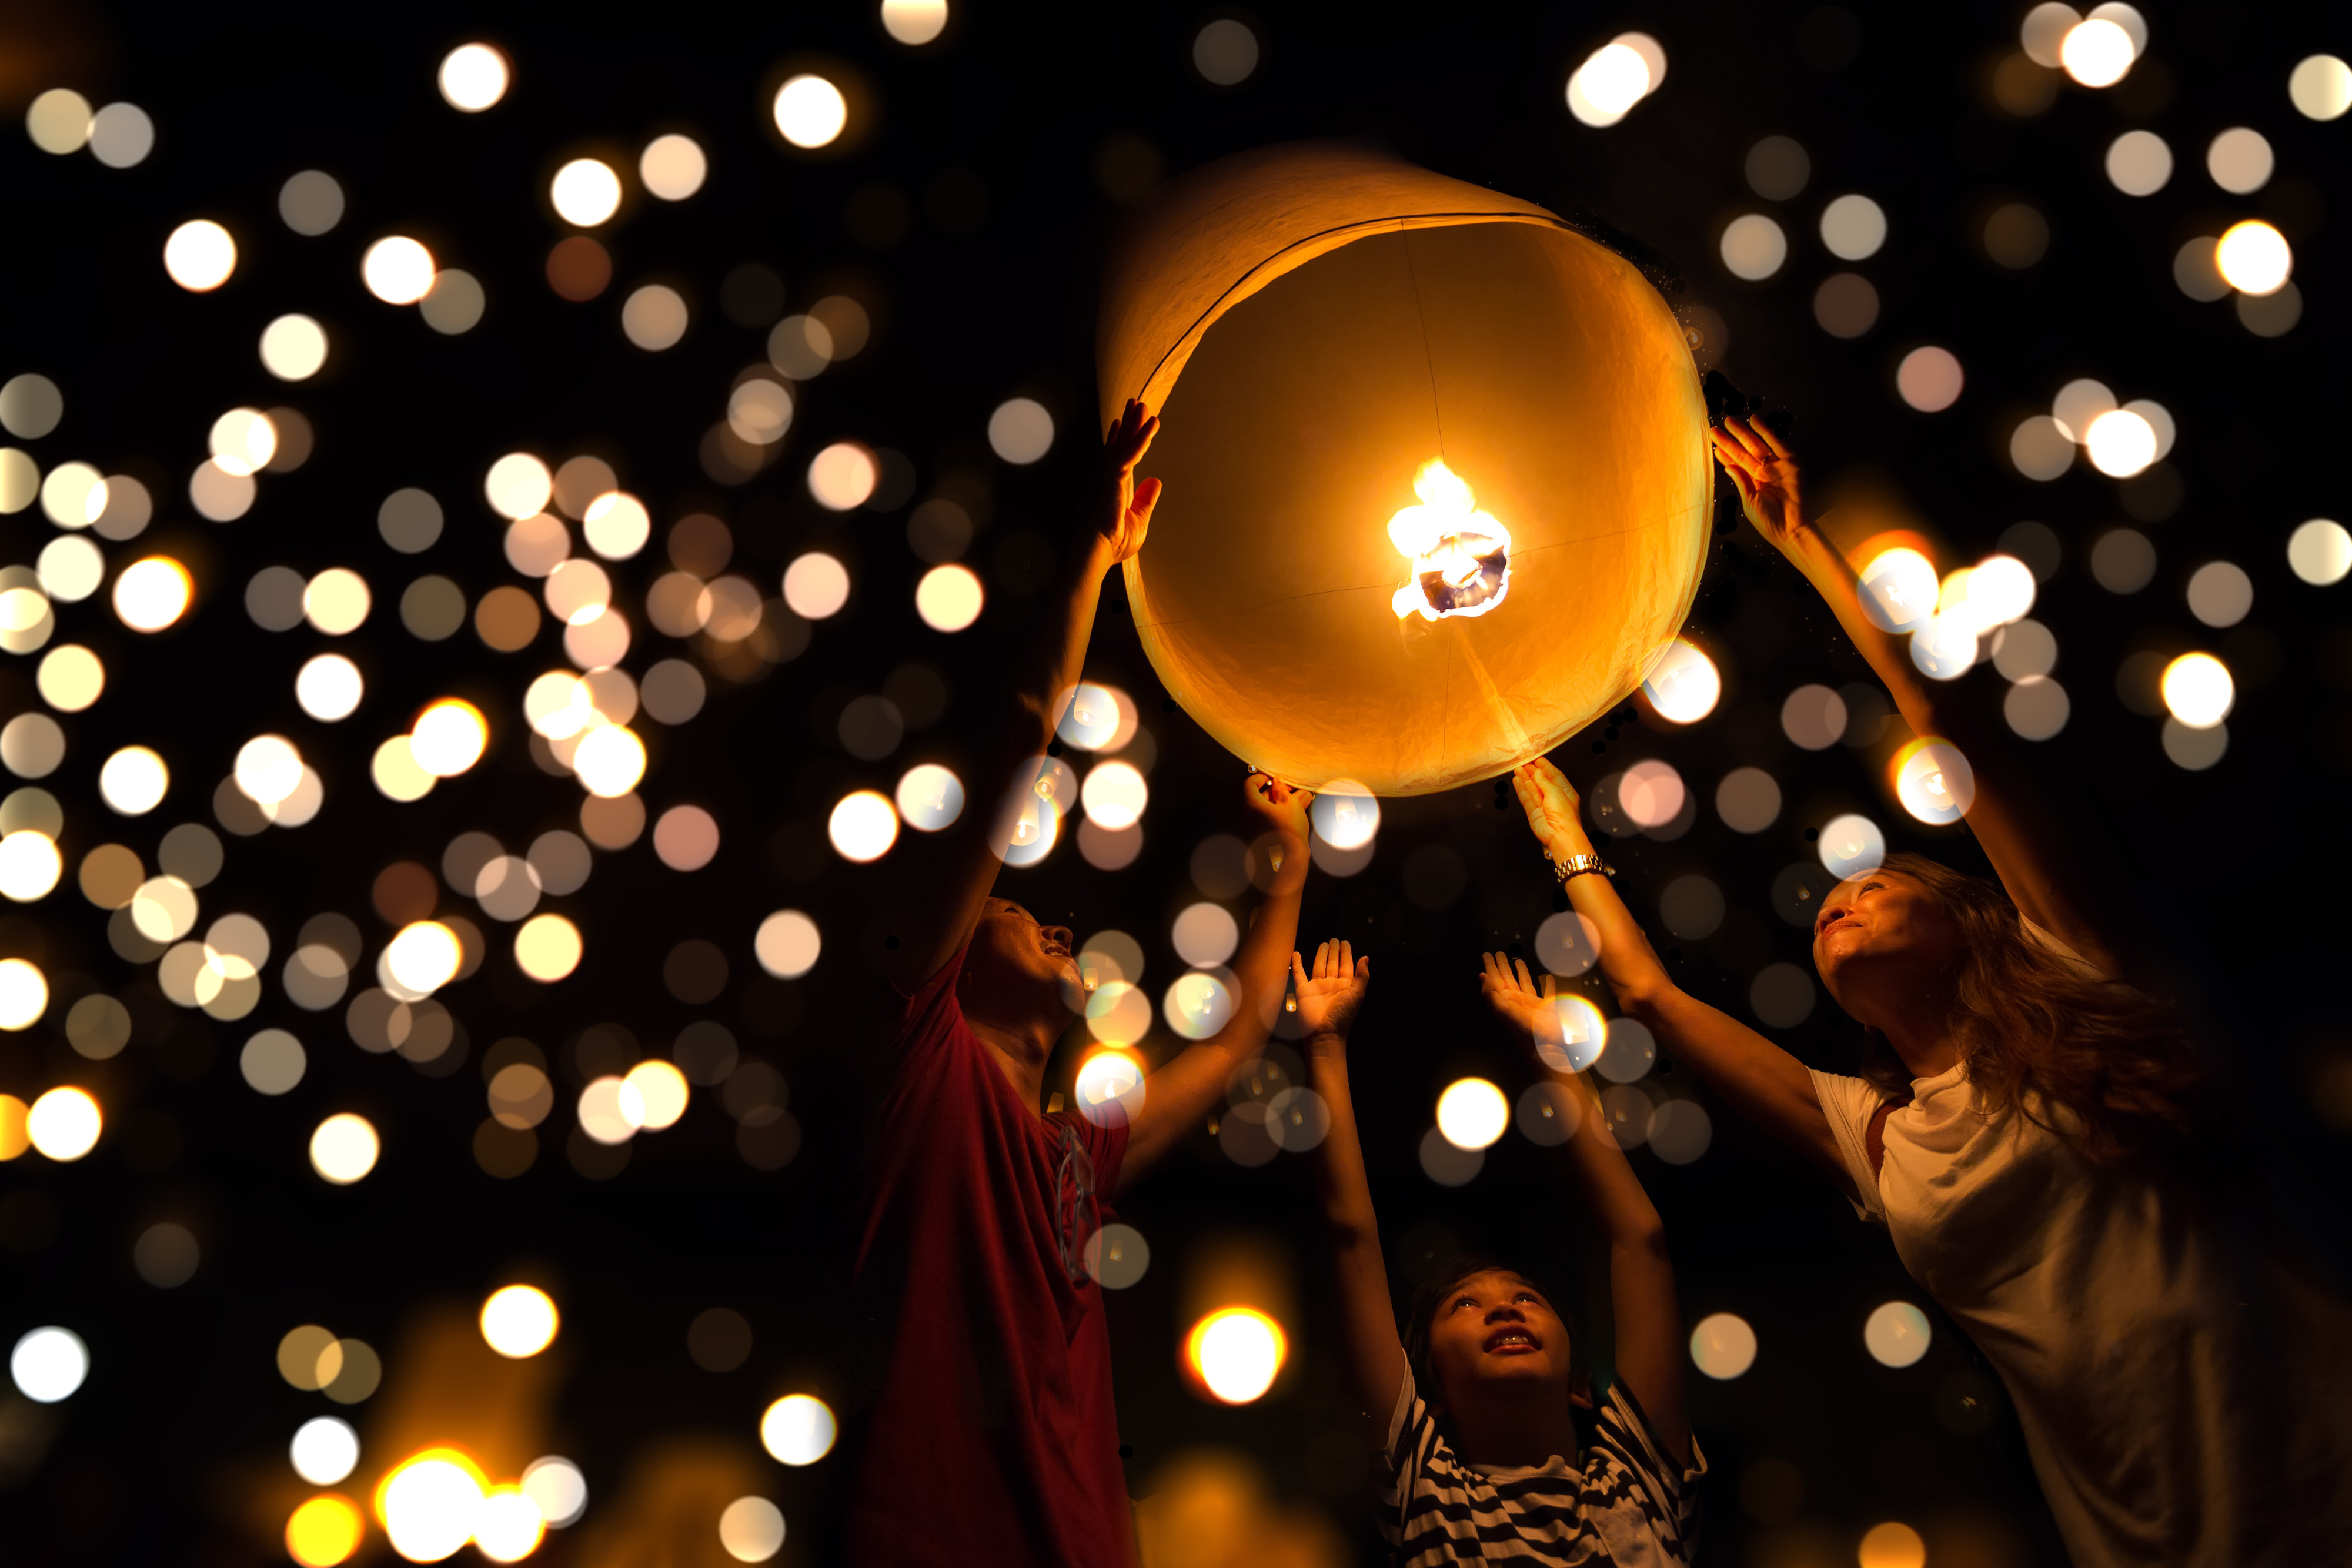 Happy Diwali Hd Wallpaper With Quotes How To Add Blur And Bokeh Effects To Photos In Photoshop